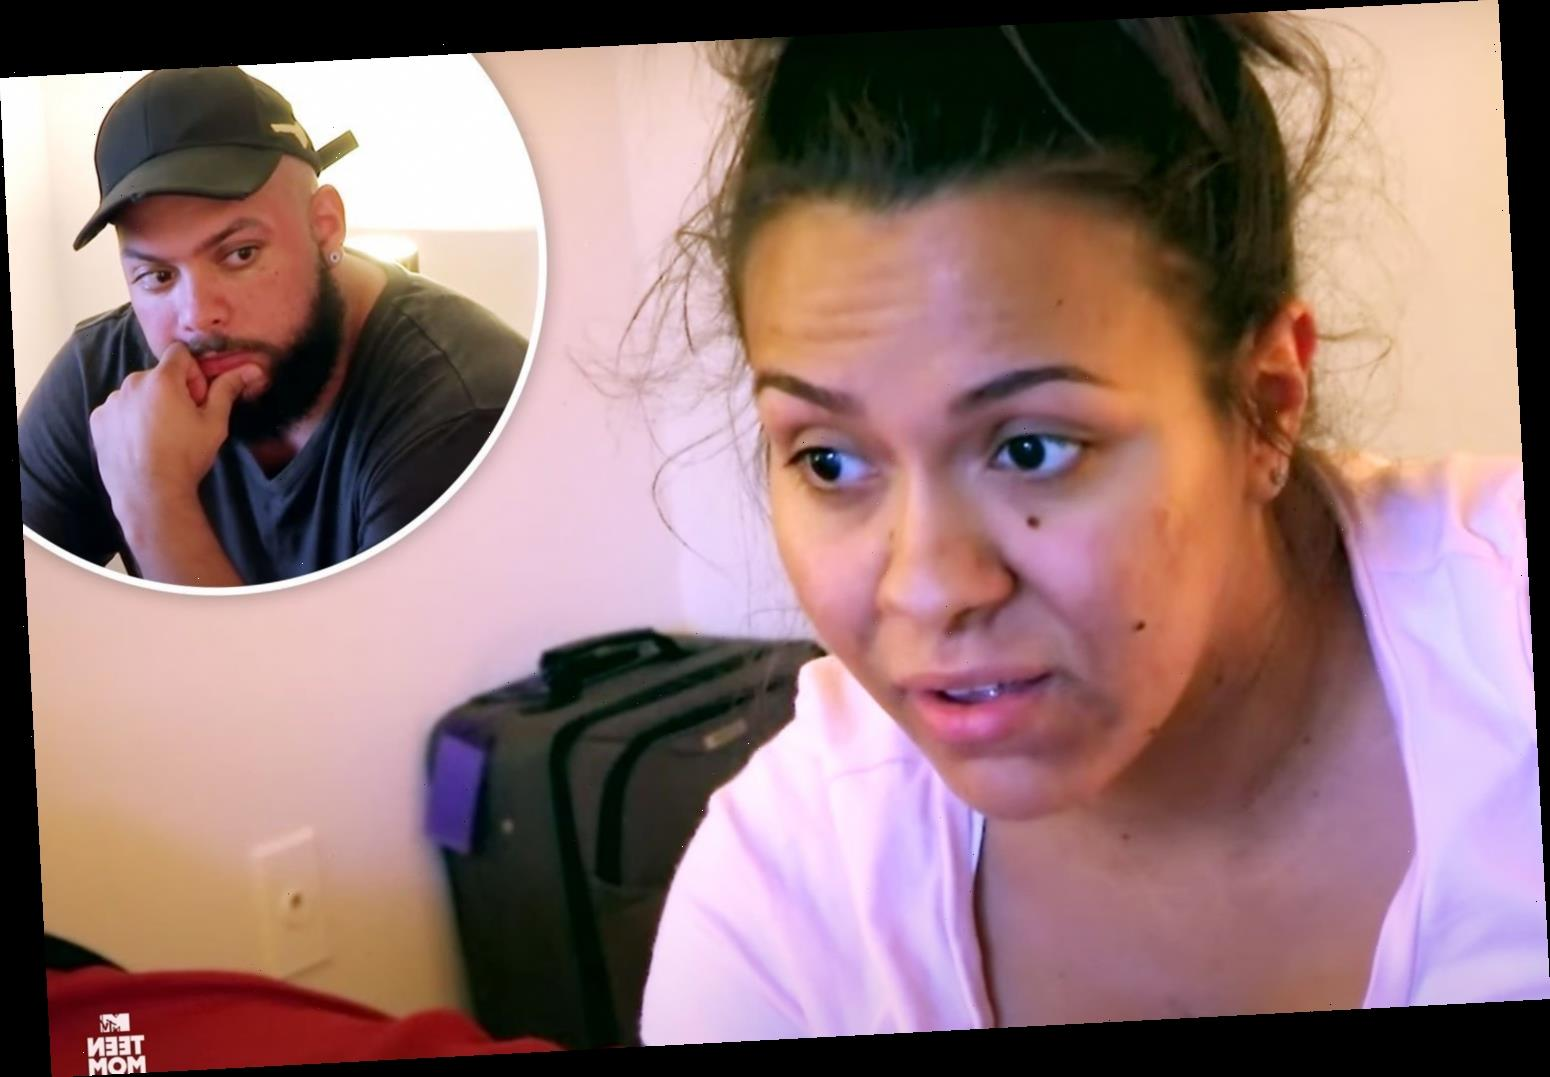 Teen Mom 2's Briana DeJesus 'slept with baby daddy Luis Hernandez' and 'was worried she may have contracted something' – The Sun